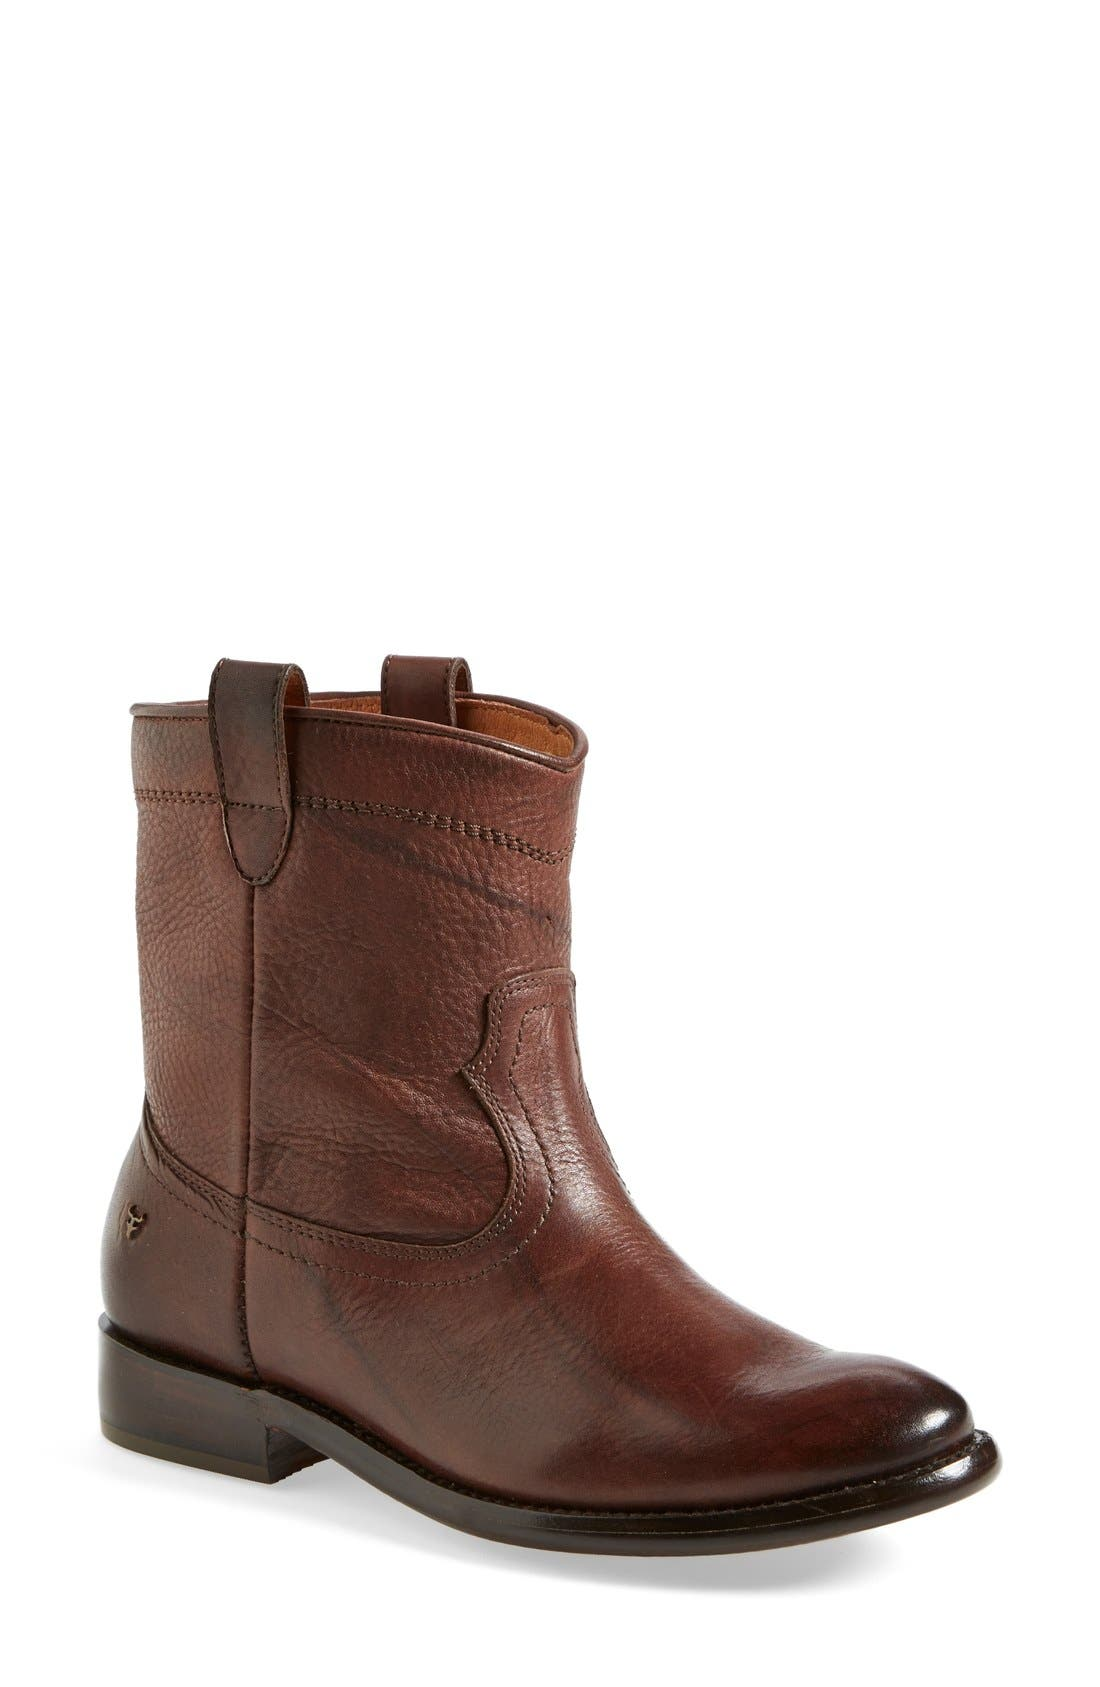 'Ada' Boot,                             Main thumbnail 1, color,                             Dark Brown